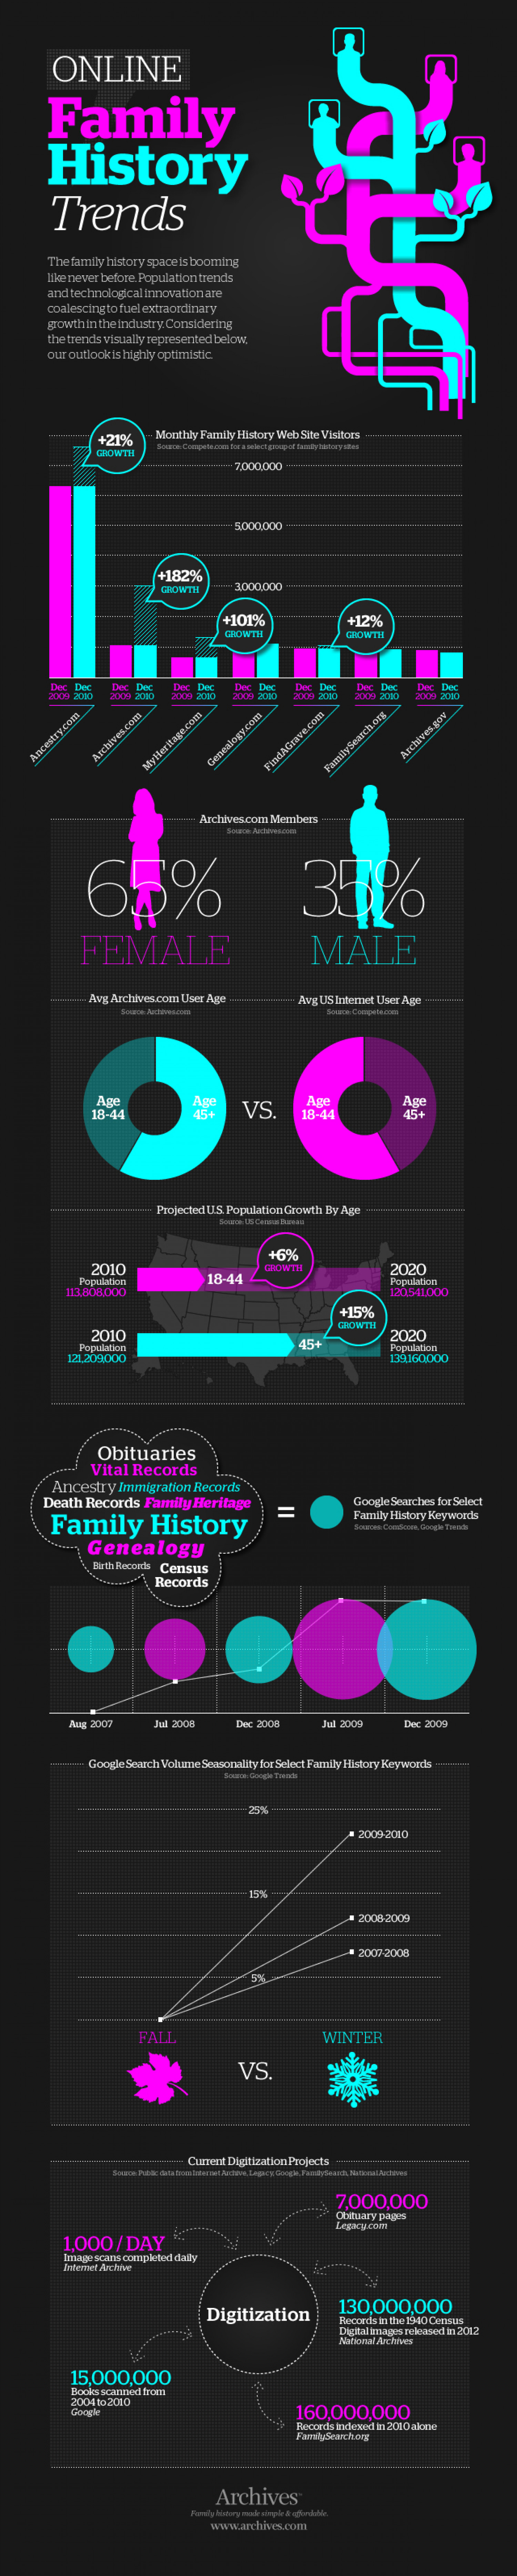 Online Family History Trends Infographic